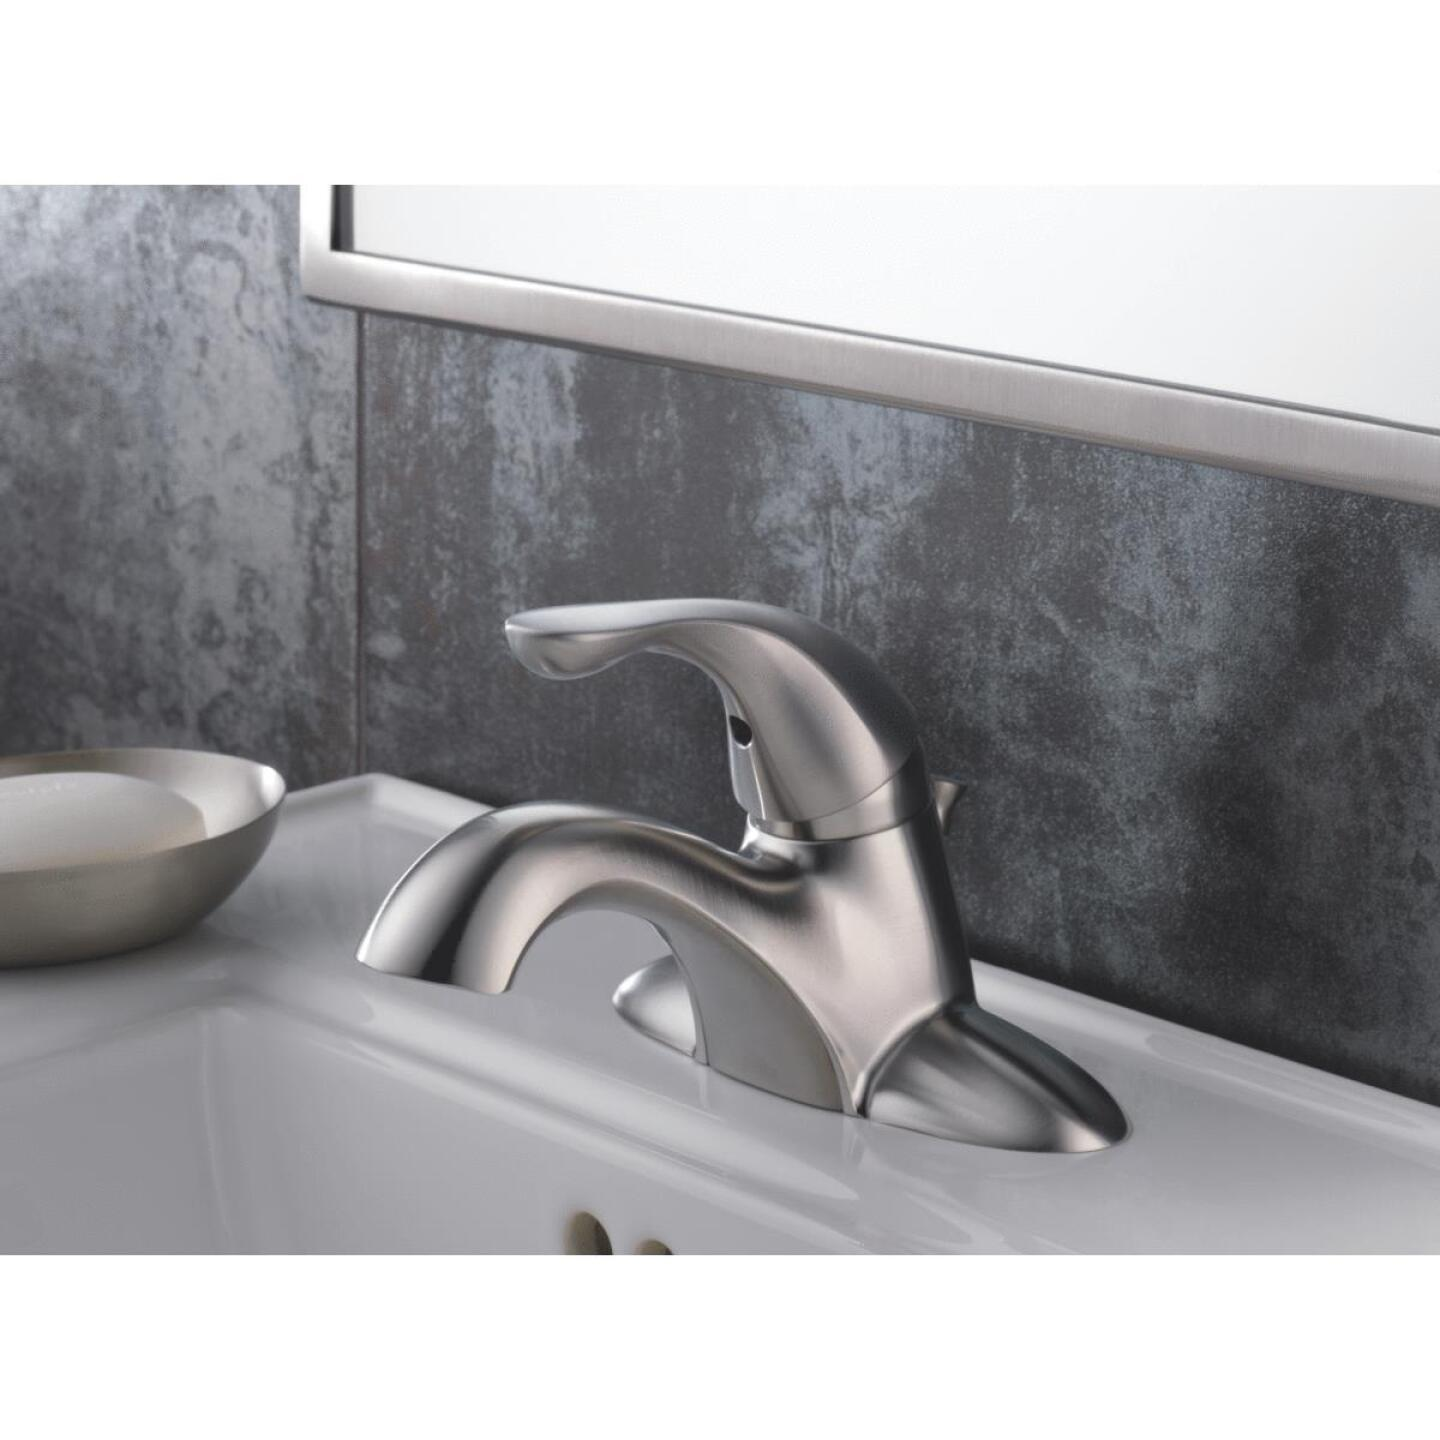 Delta Classic Stainless 1-Handle Lever 4 In. Centerset Bathroom Faucet with Pop-Up Image 3